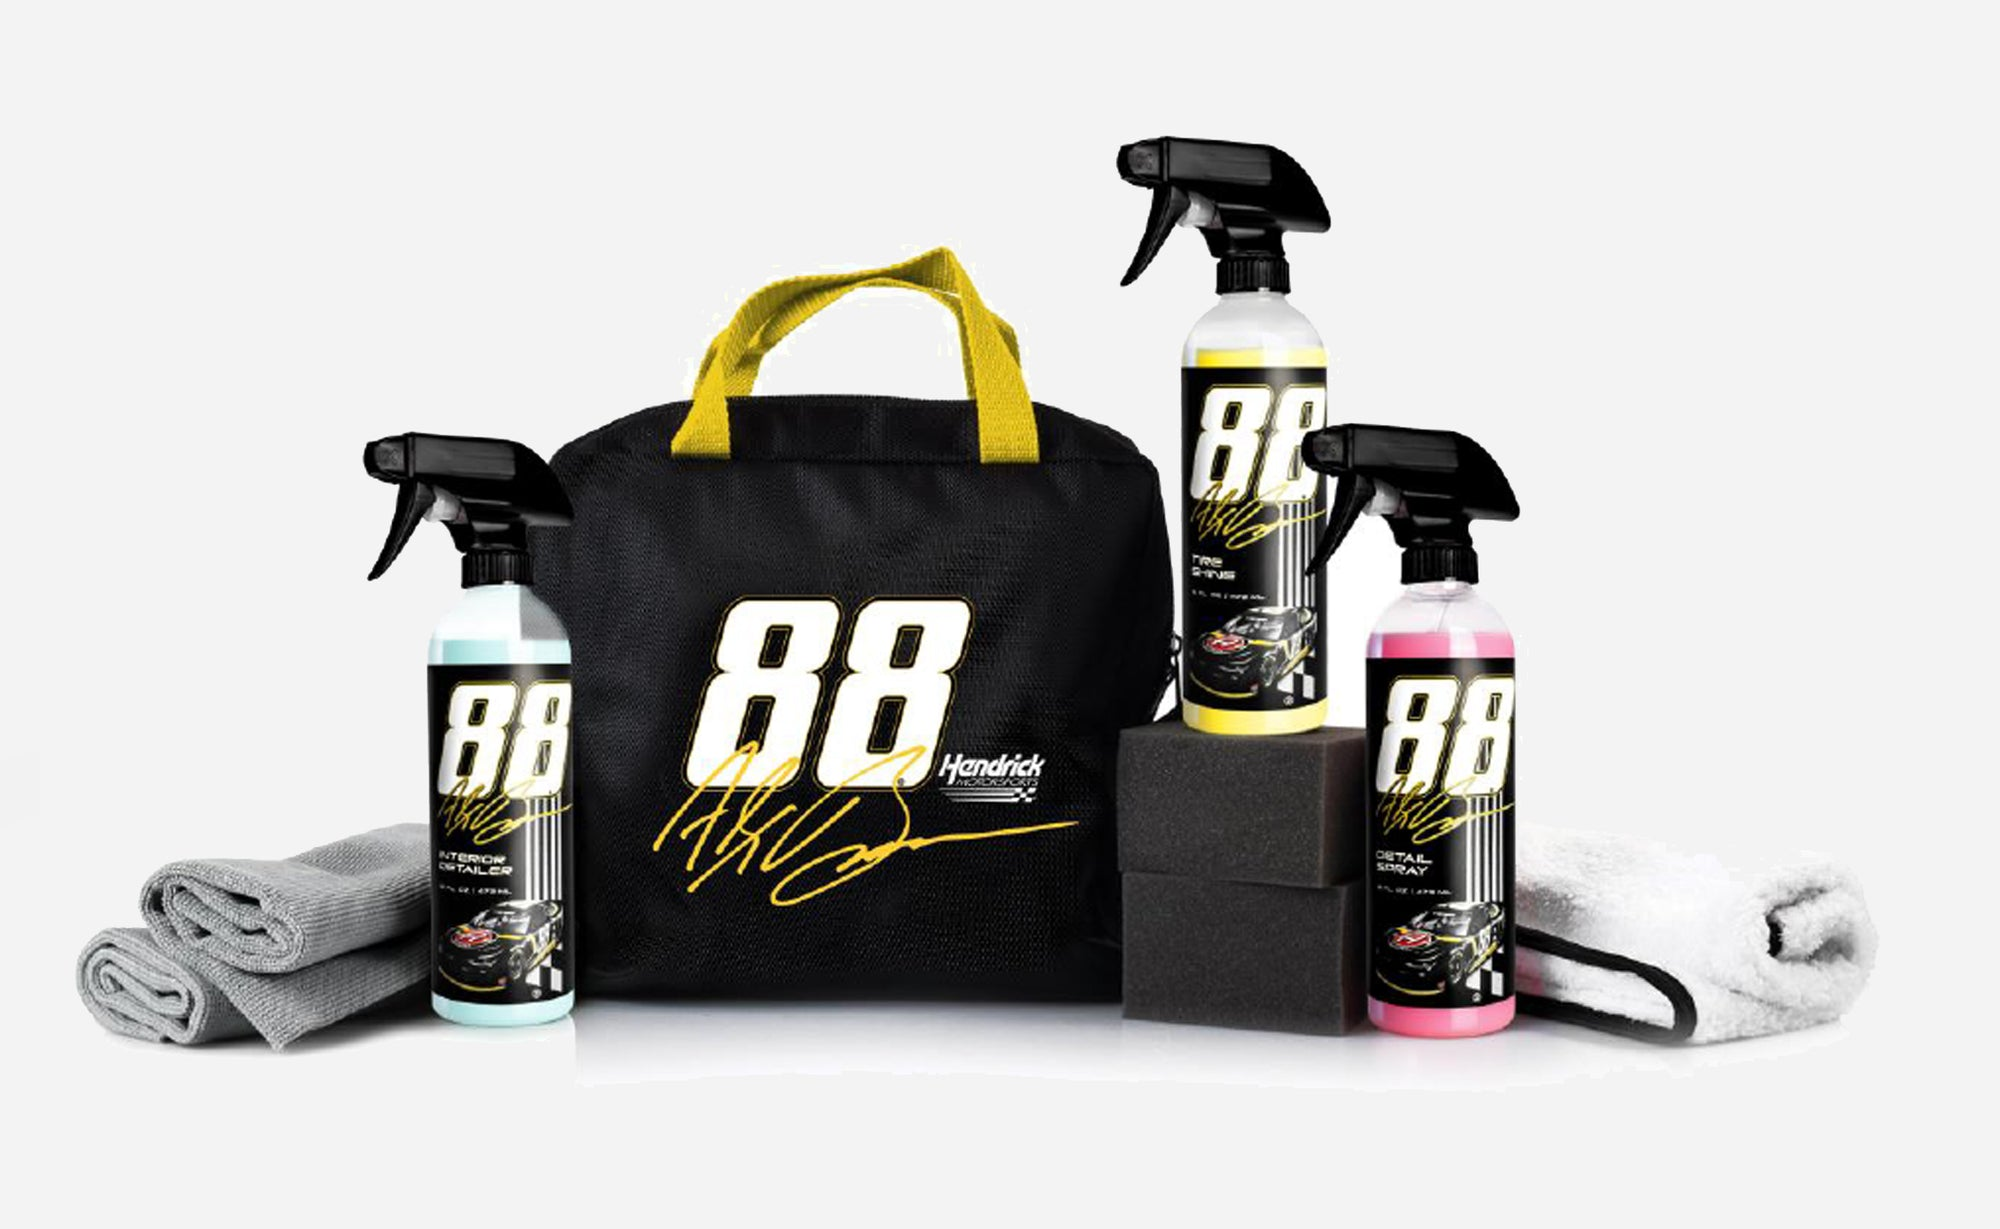 Adam's Polishes x Alex Bowman #88 Chevy Goods Bag Kit